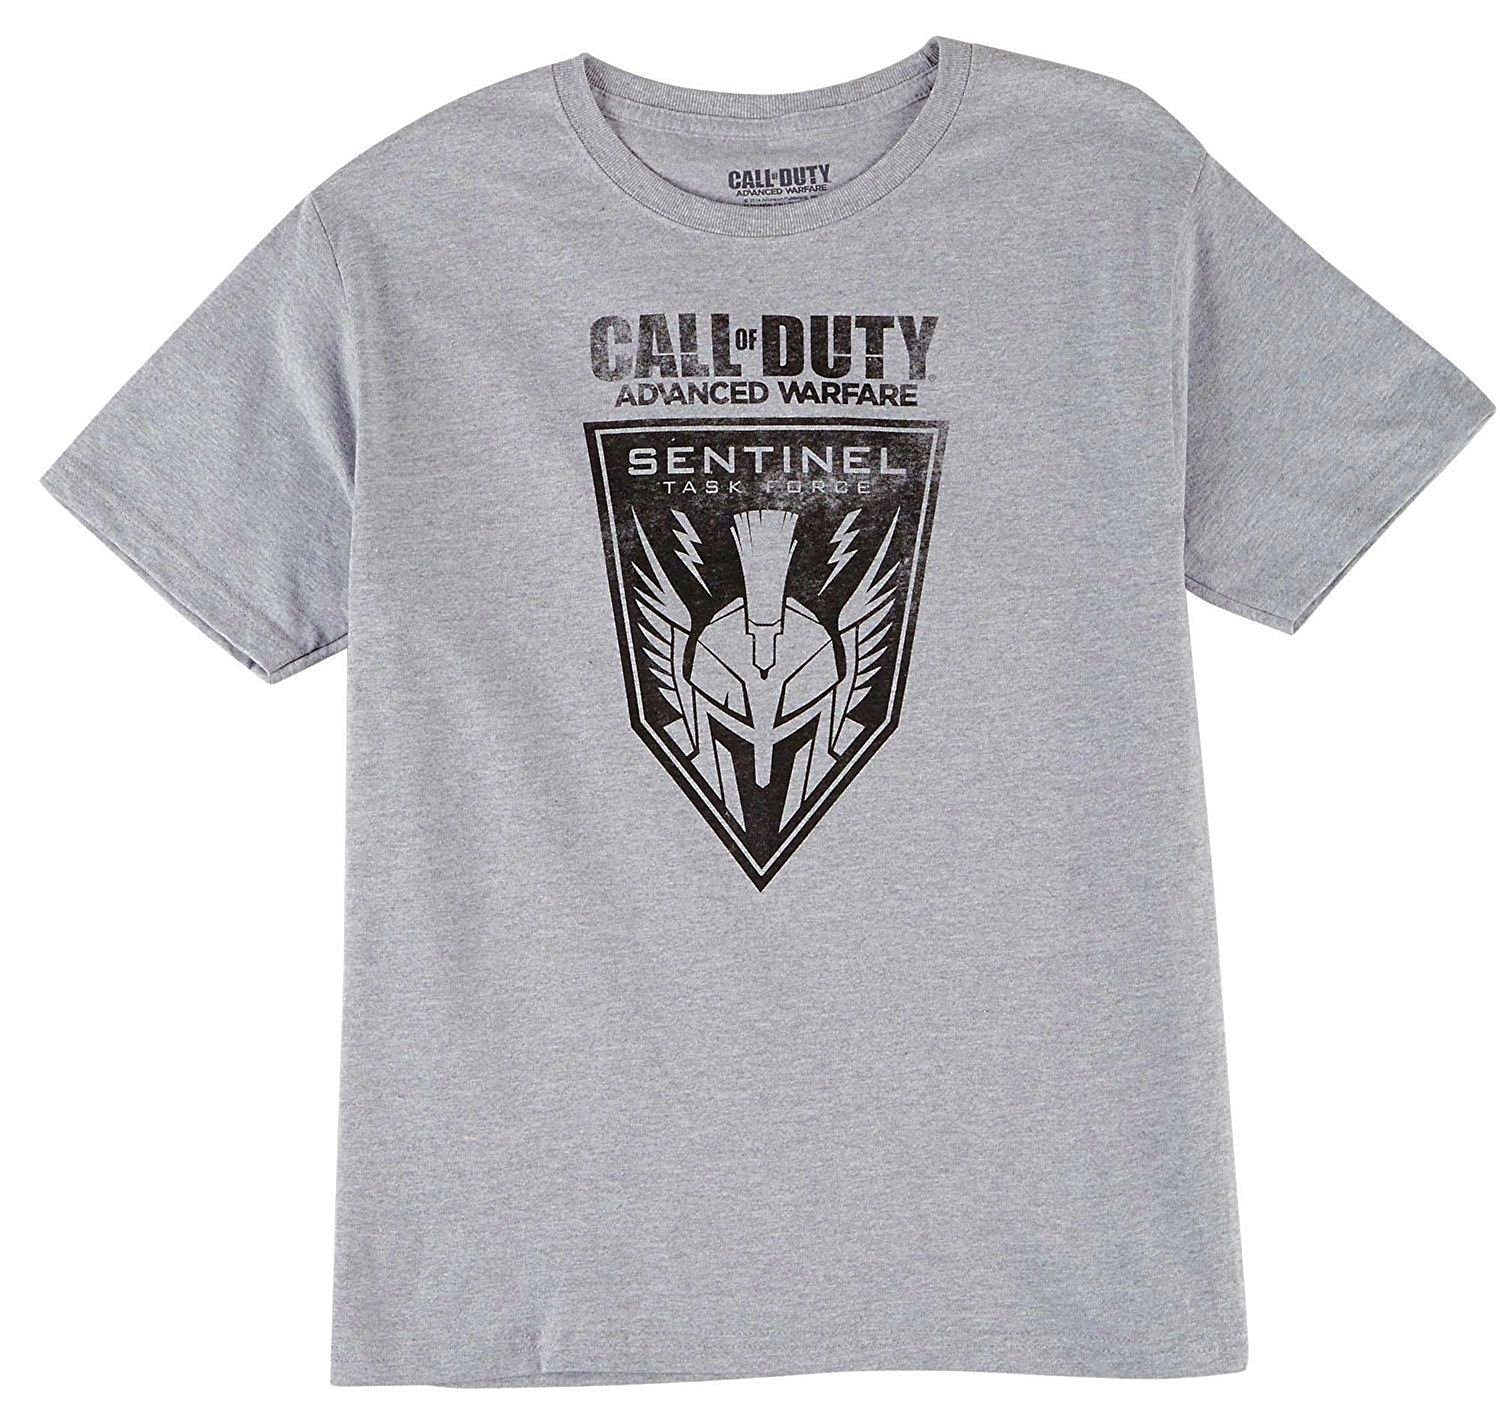 Call of Duty Advanced Warfare Sentinel Task Force Graphic